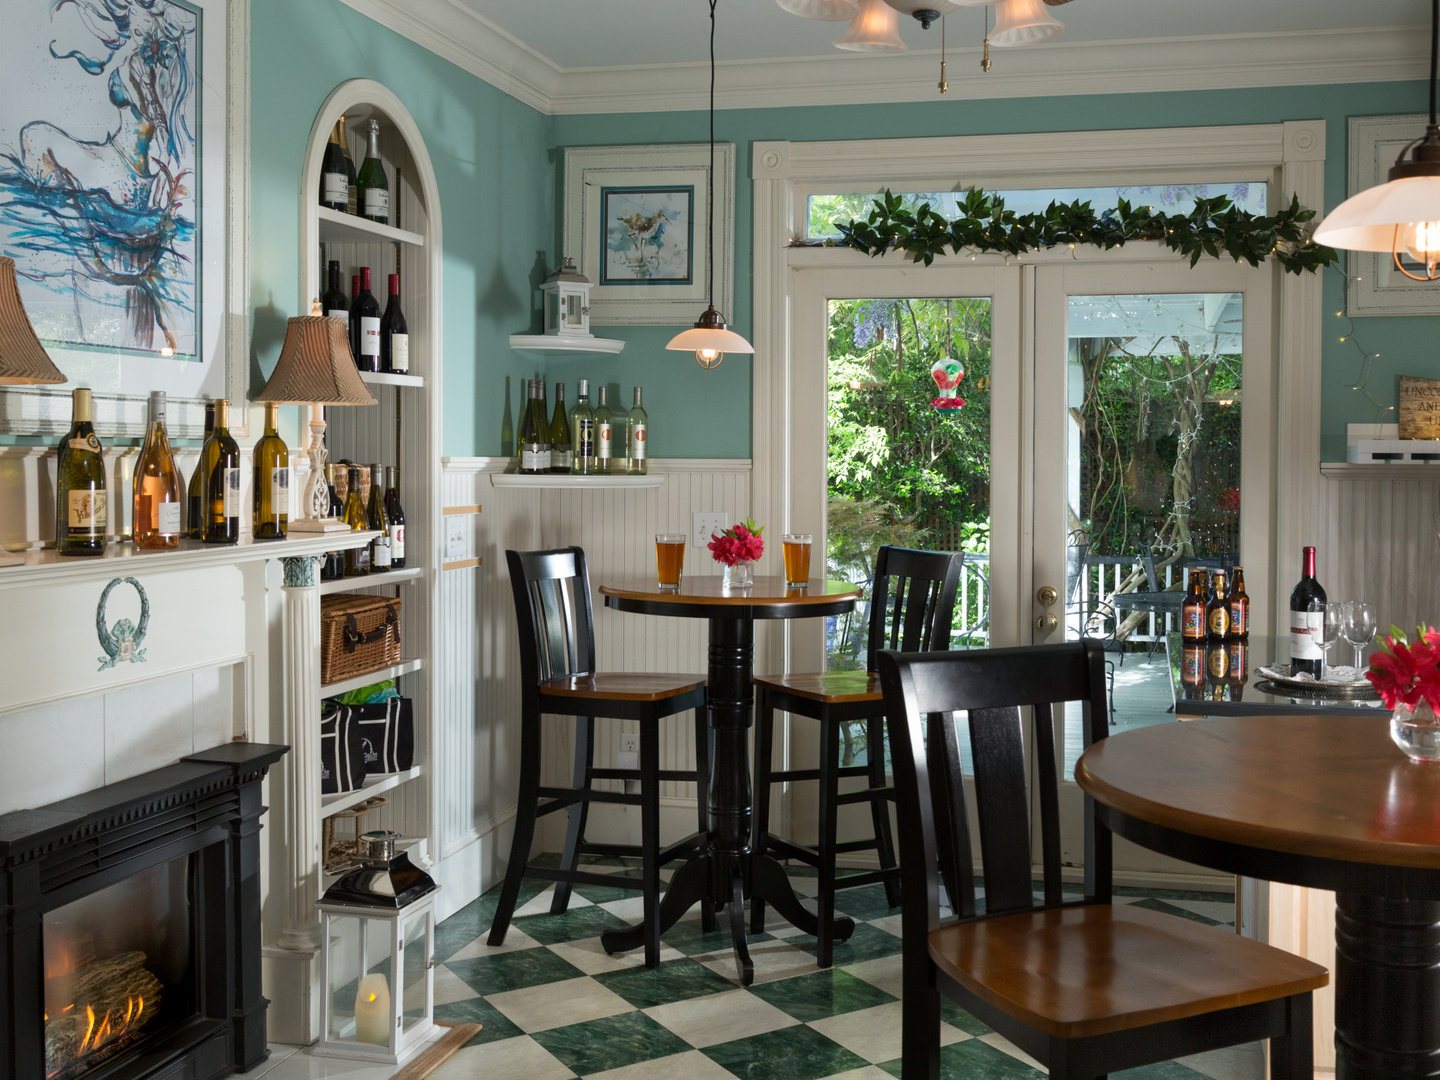 A kitchen with a dining room table at White Doe Inn.